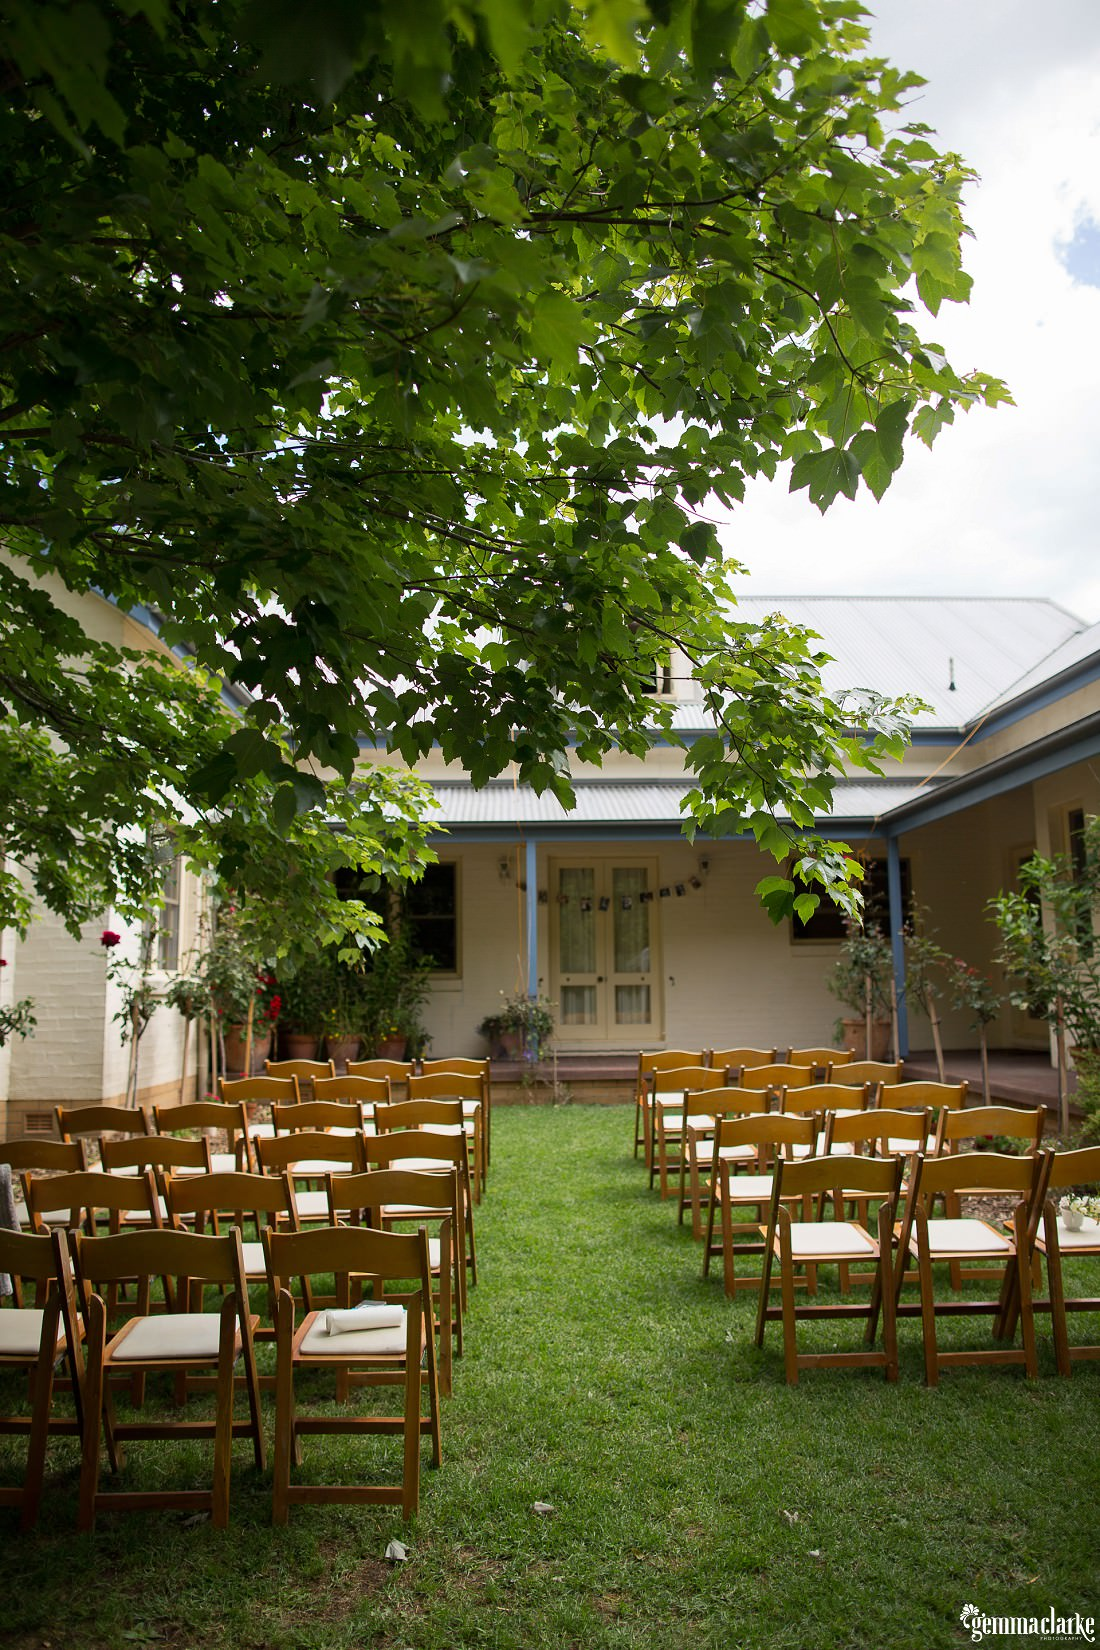 Ceremony setup at this Backyard Wedding overlooking the cottage style house with wooden chairs and a big overhanging tree